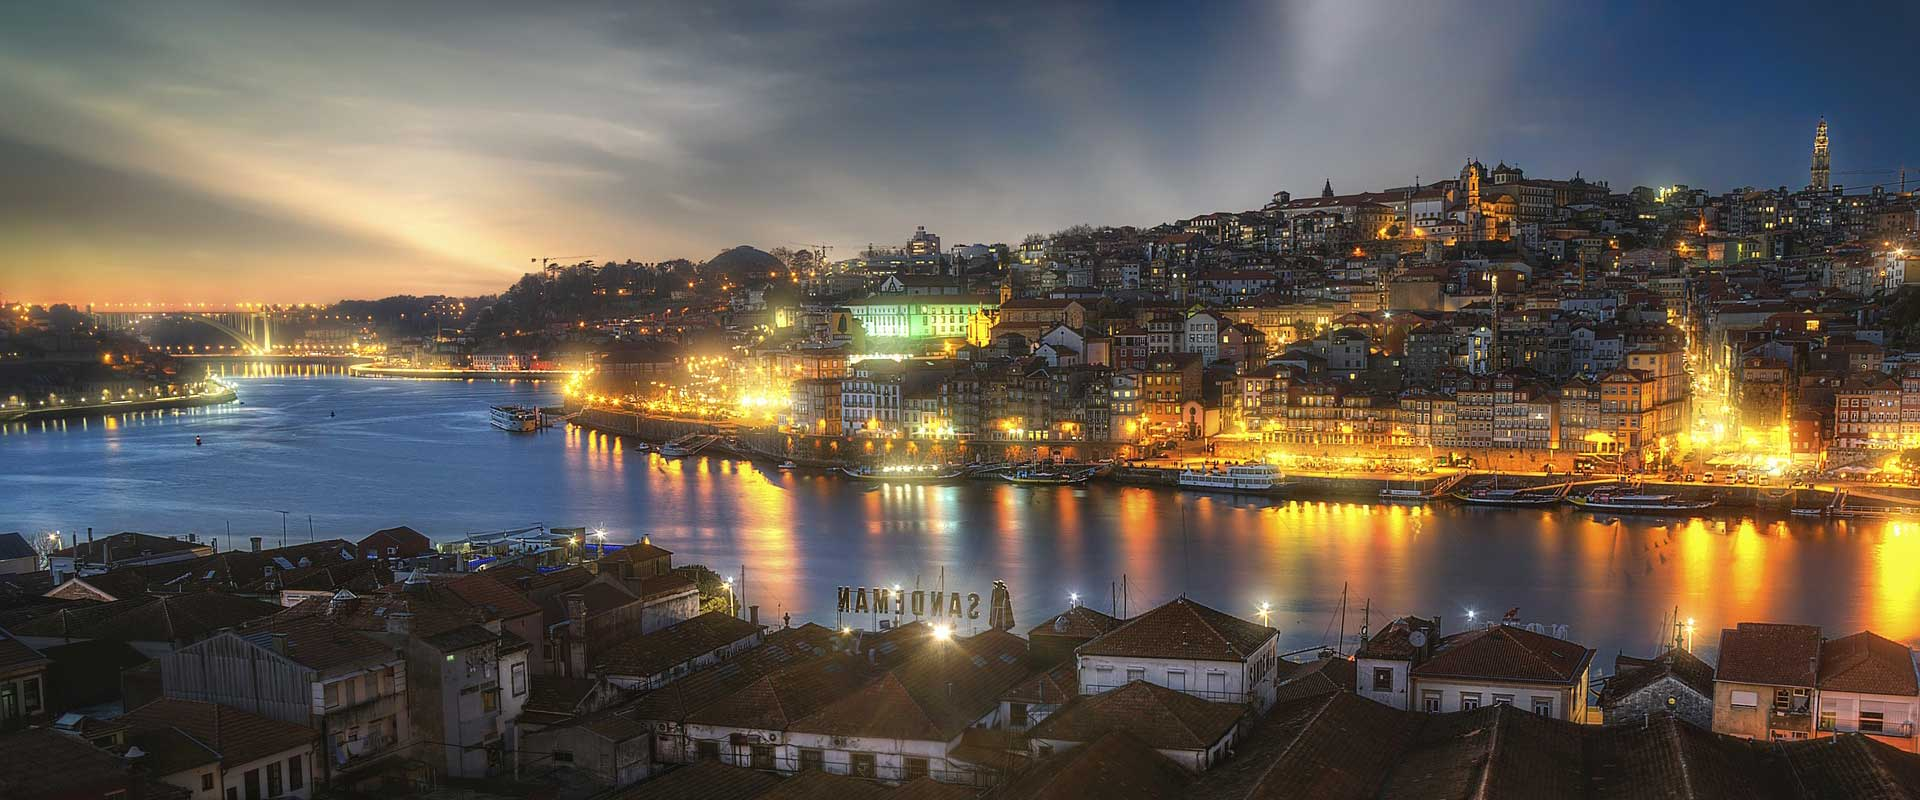 Porto-by-night-Douro-river